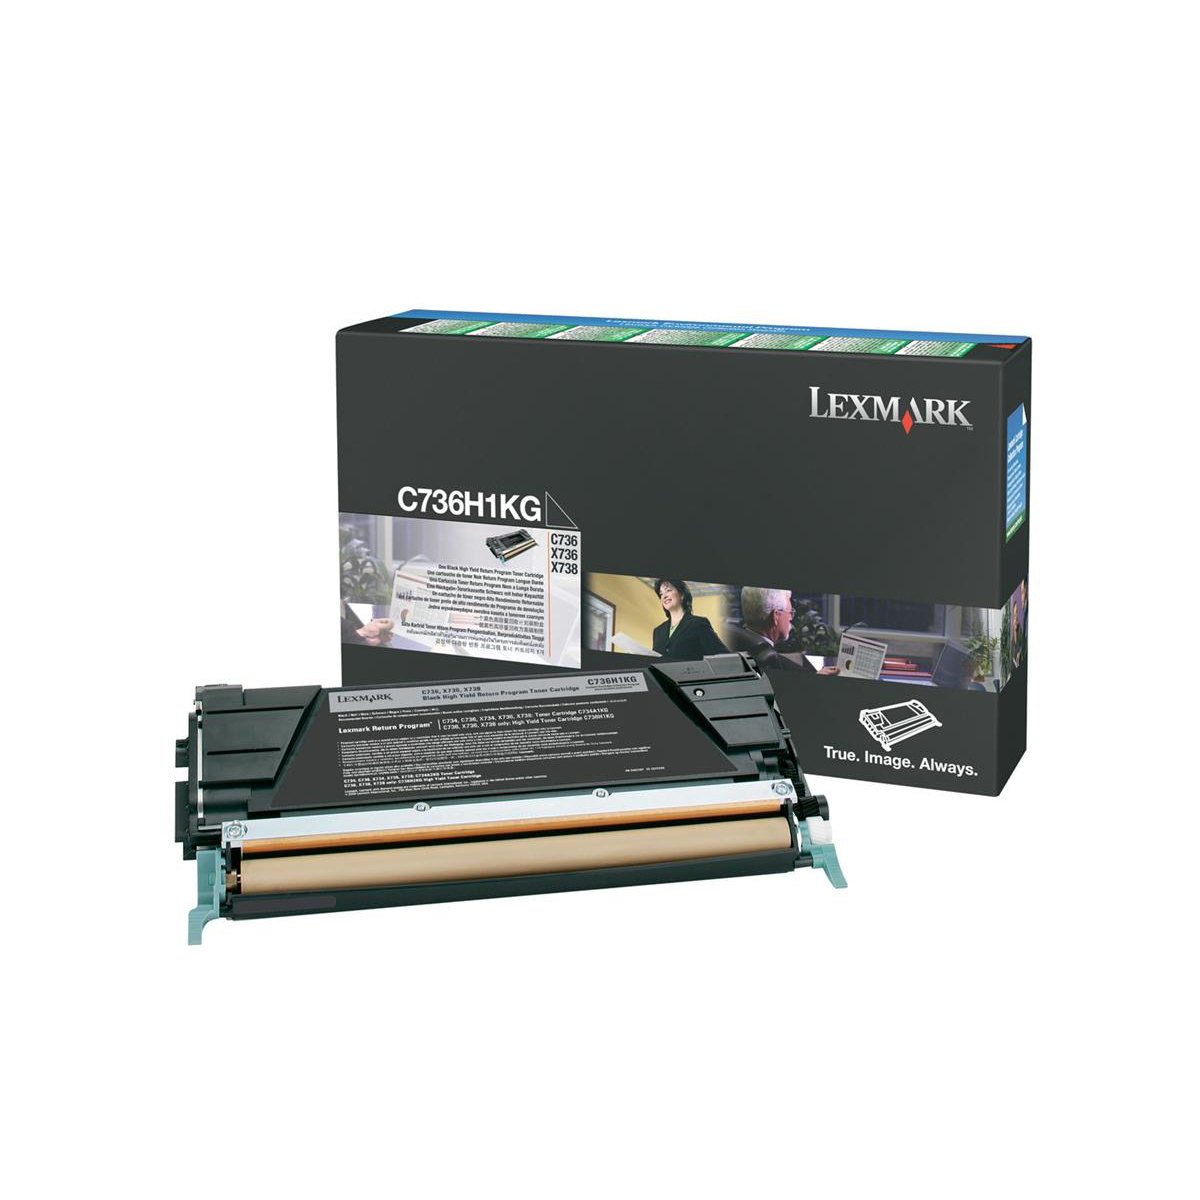 Lexmark C736/X736/X738 Laser Toner Cart High Yield Return Programme Page Life 12000pp Black Ref C736H1KG